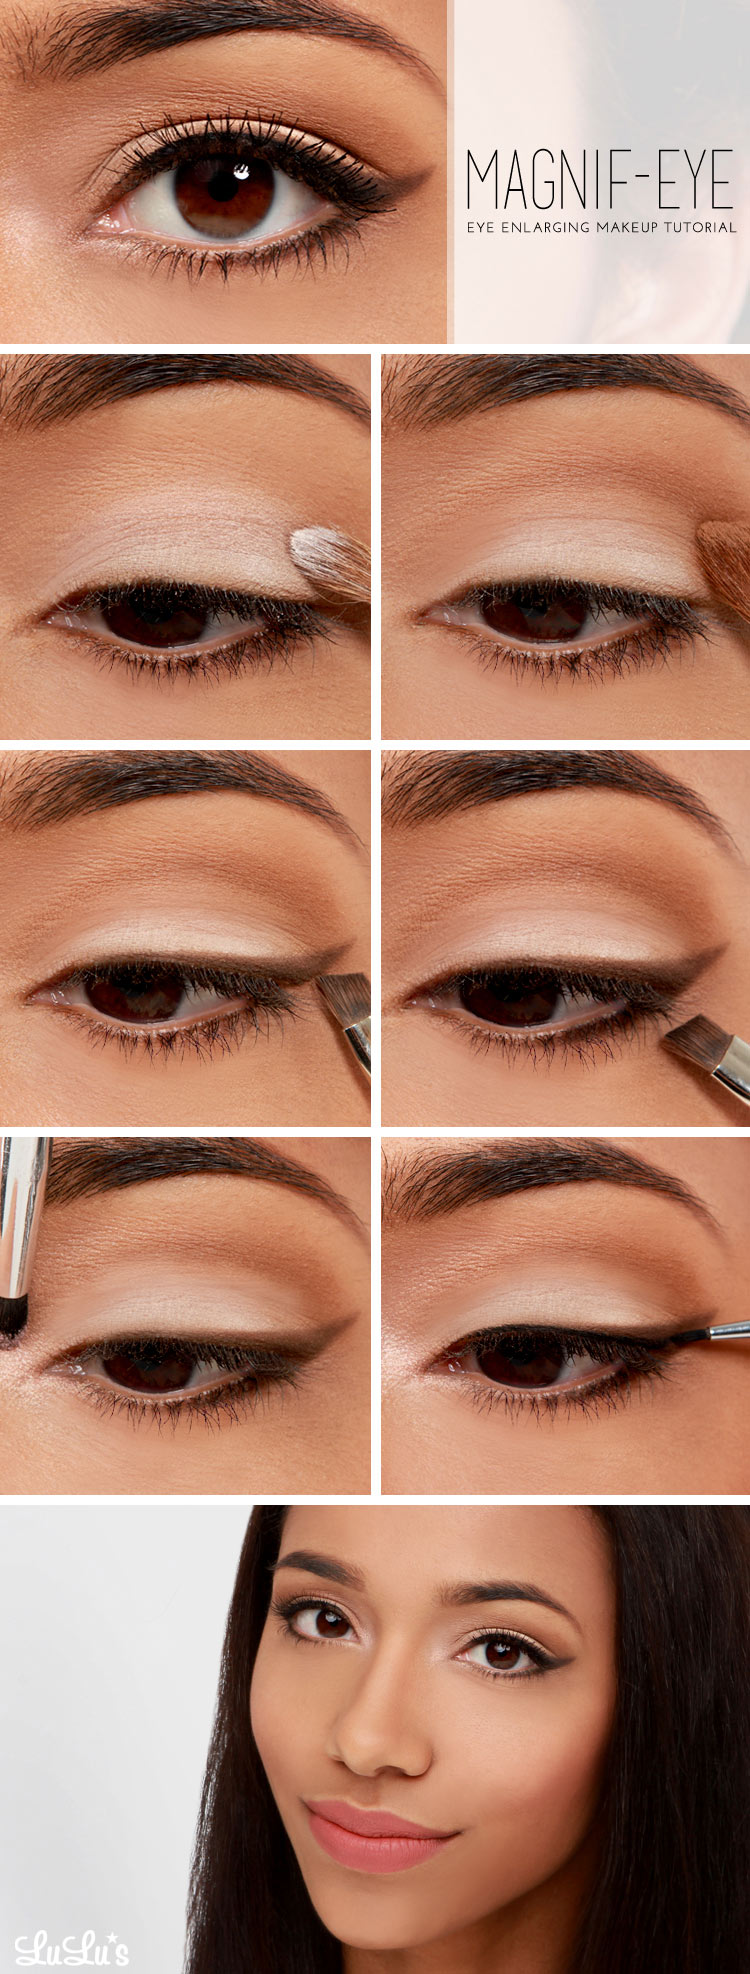 Steps. Sweep white eyeshadow ...